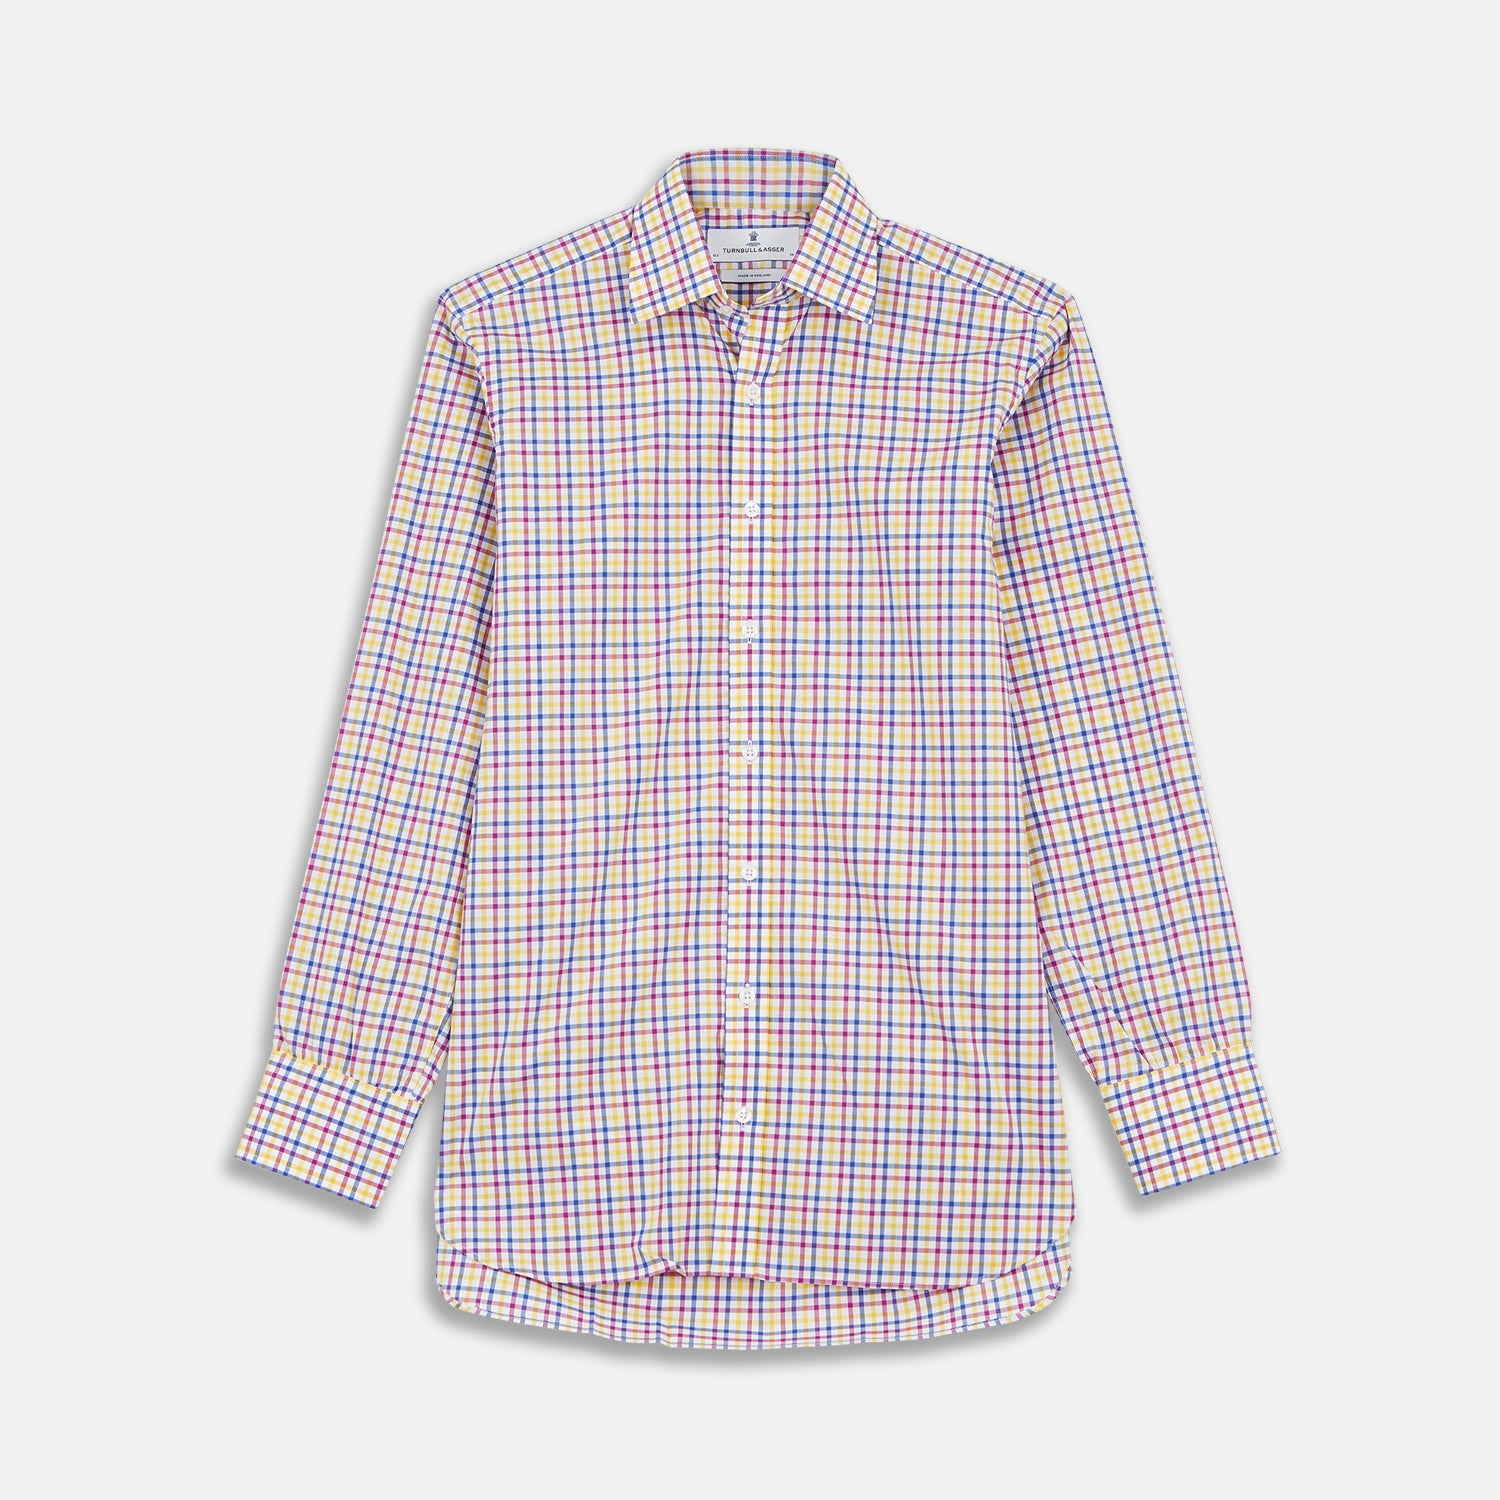 Blue, Yellow and Pink Check Shirt with T&A Collar and 3-Button Cuffs